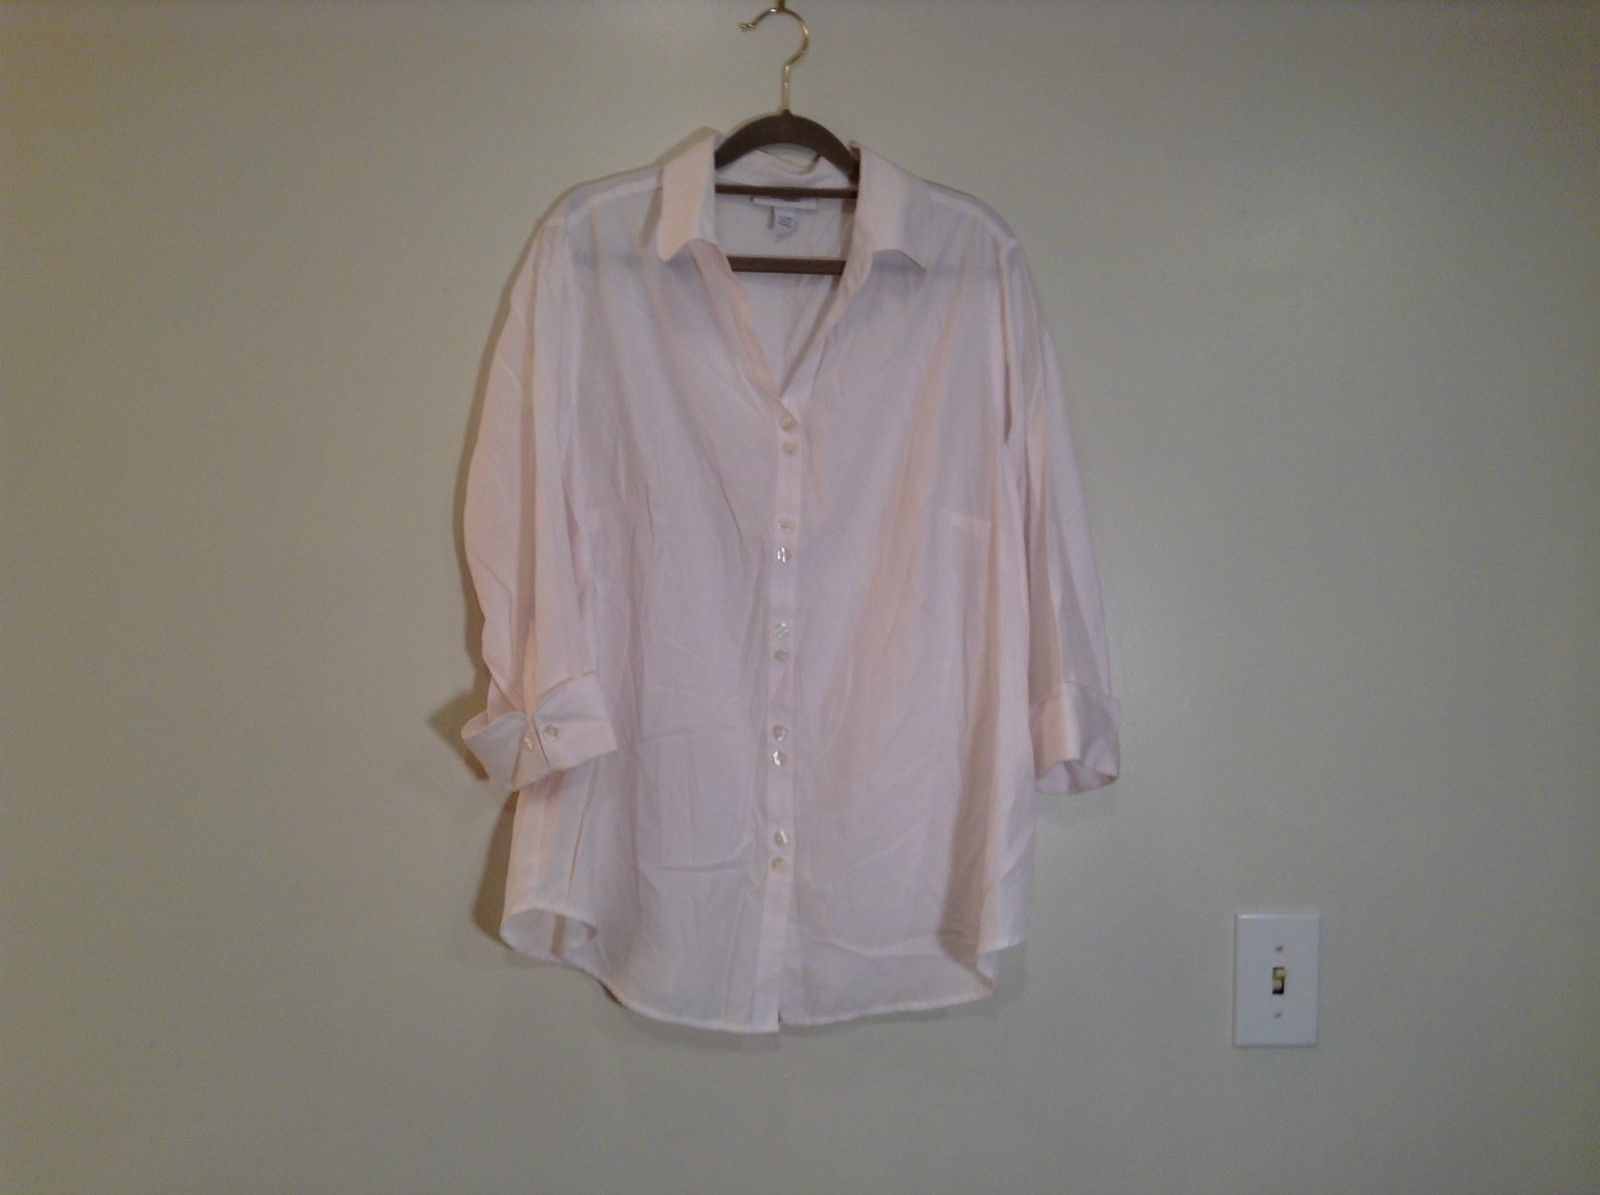 Dressbarn White Button Up Front Shirt Three Quarter Length Sleeves Size 14 to 16